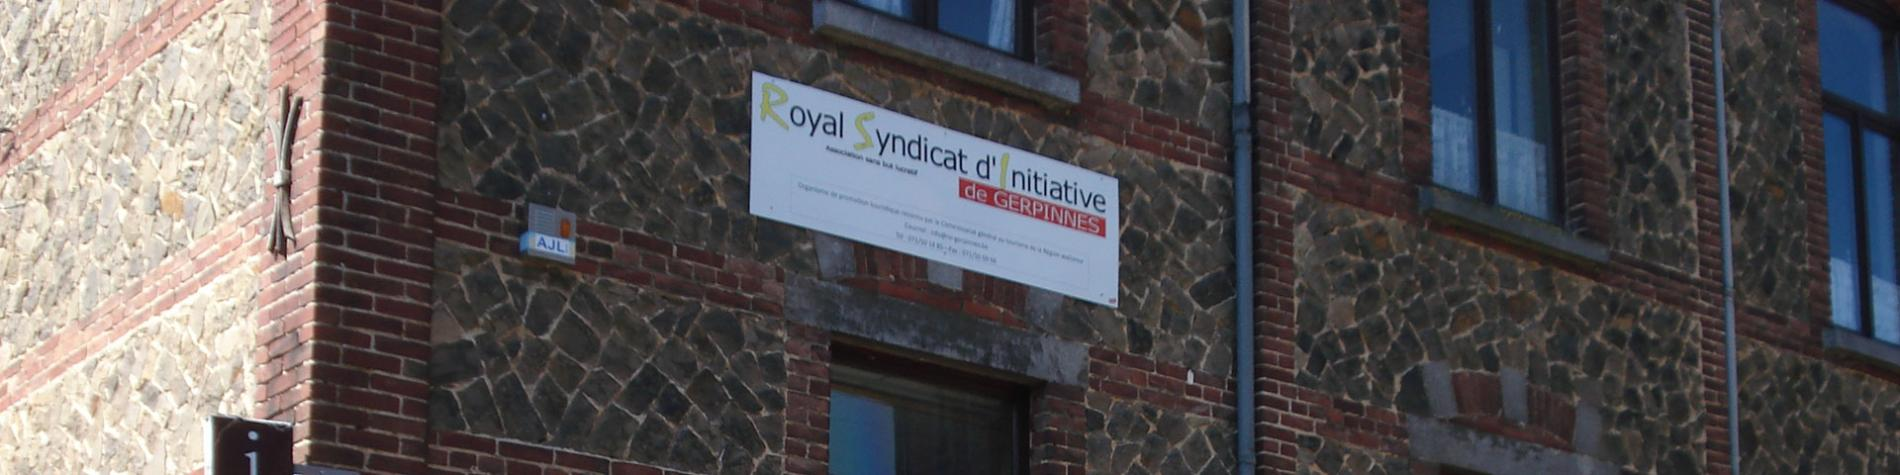 Syndicat d'initiative - Gerpinnes